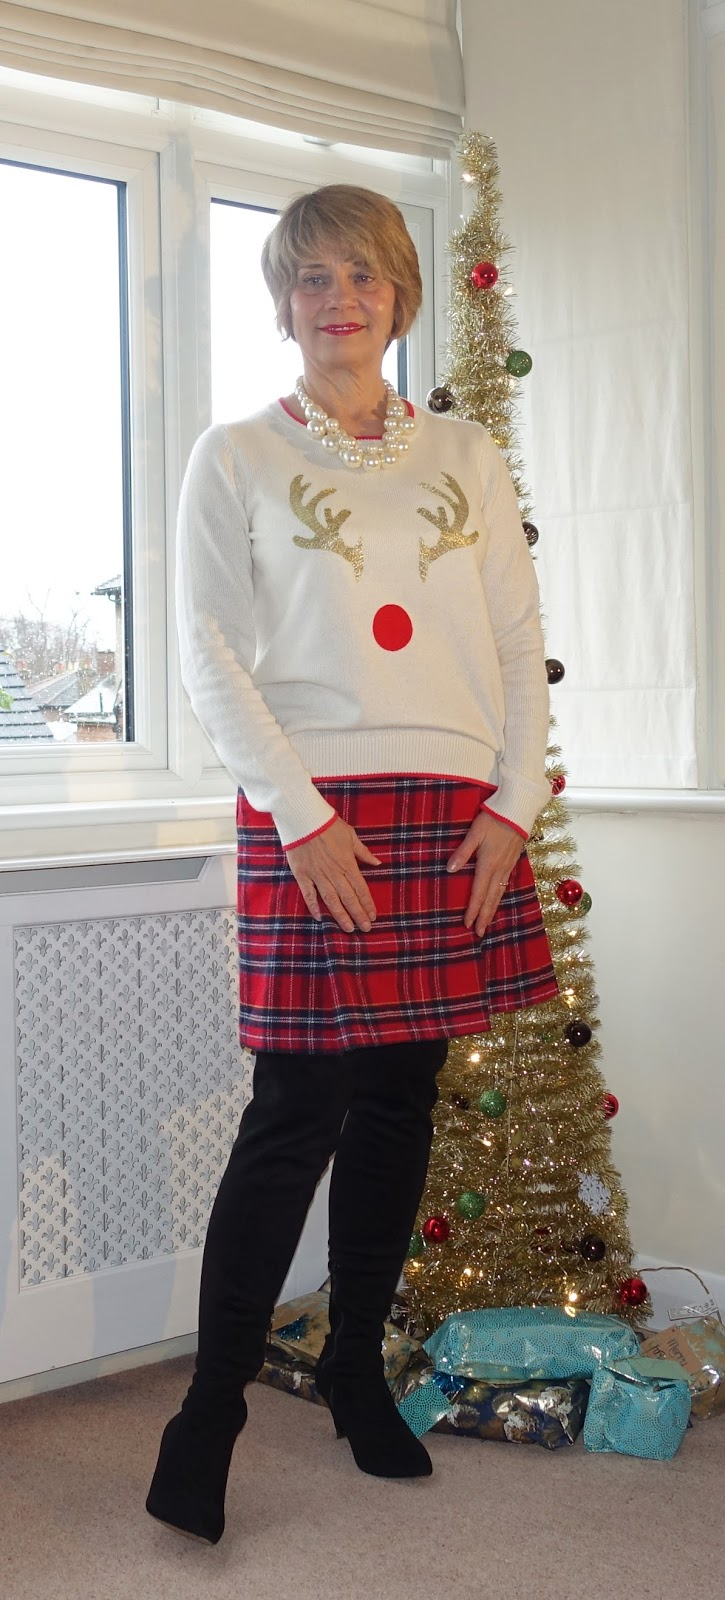 Image showing a 50 plus woman posing by a Christmas tree wearing a Christmas jumper and red tartan skirt